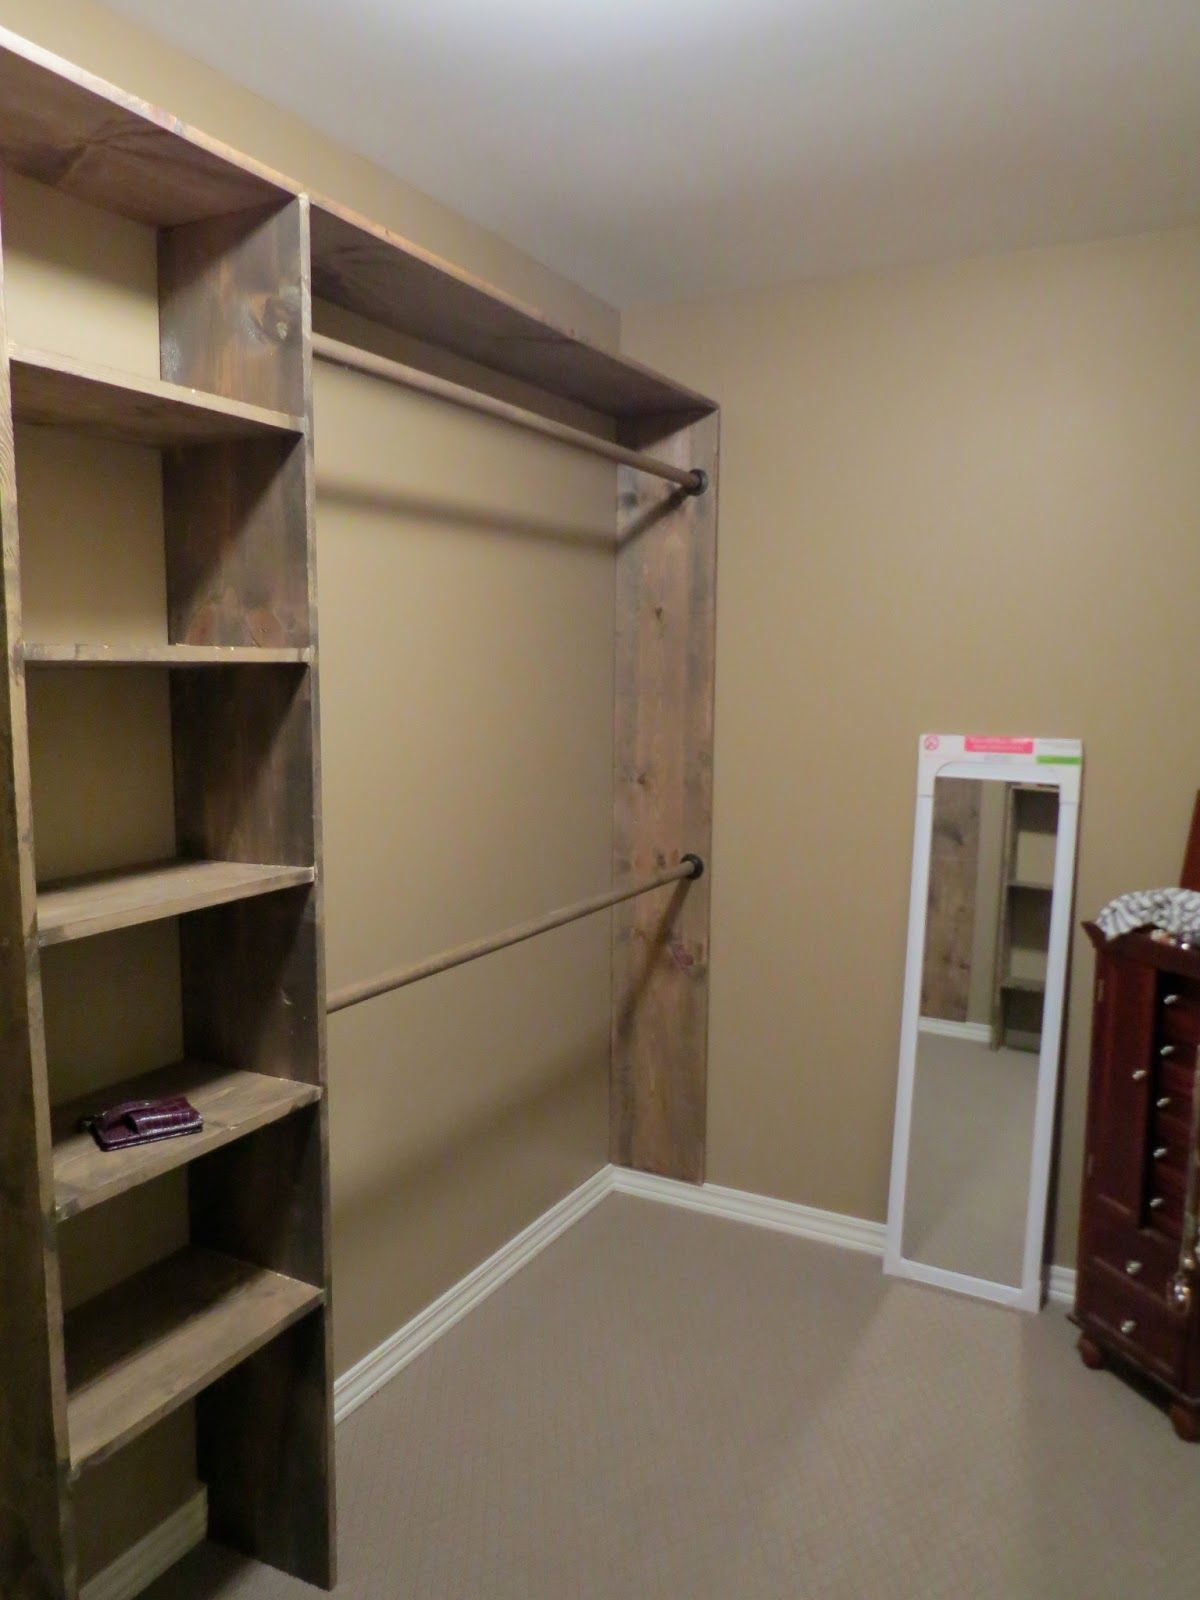 Let S Just Build A House Walk In Closets No More Living Out Of Laundry Baskets In 2020 Closet Organization Cheap Closet Remodel Closet Organization Diy